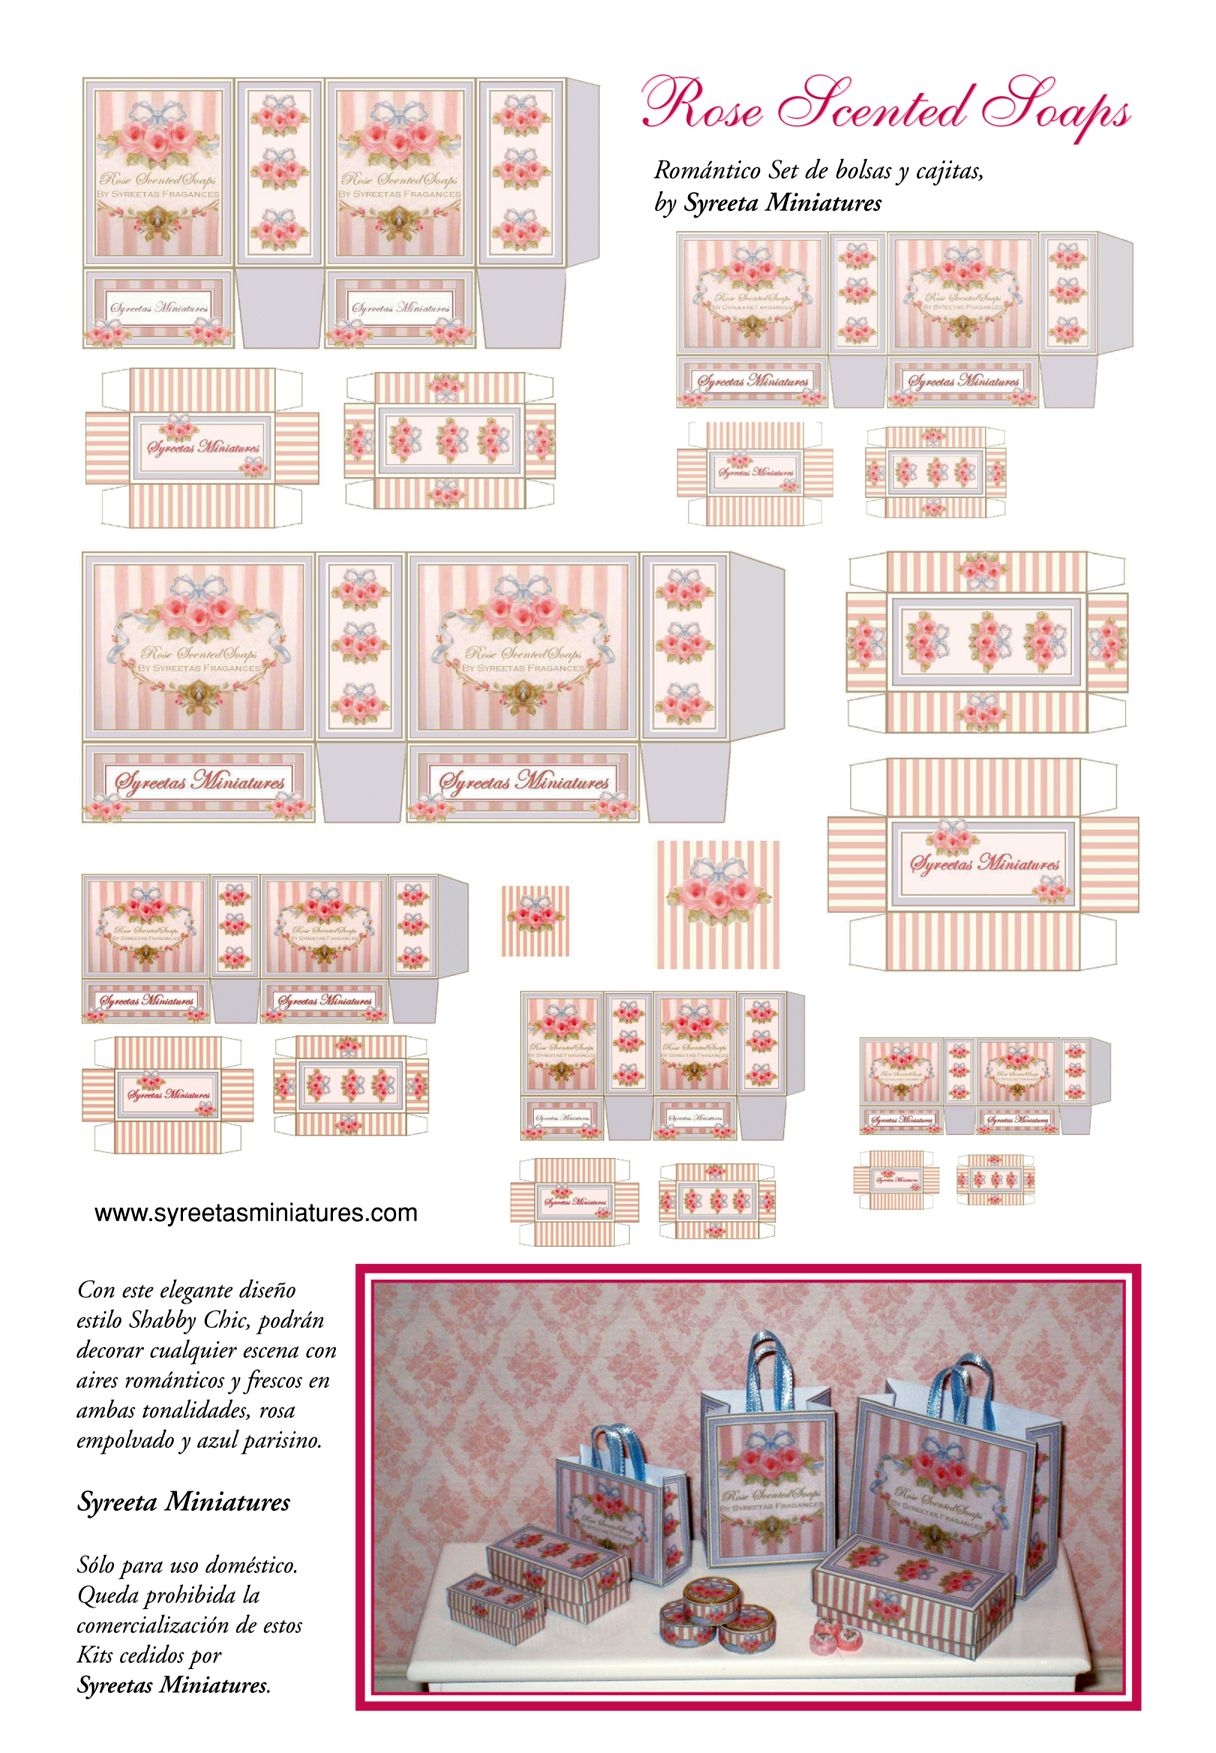 add2f9ecebde59 Miniature Printables - Rose Scented Soap Bags and Boxes. | dolls ...